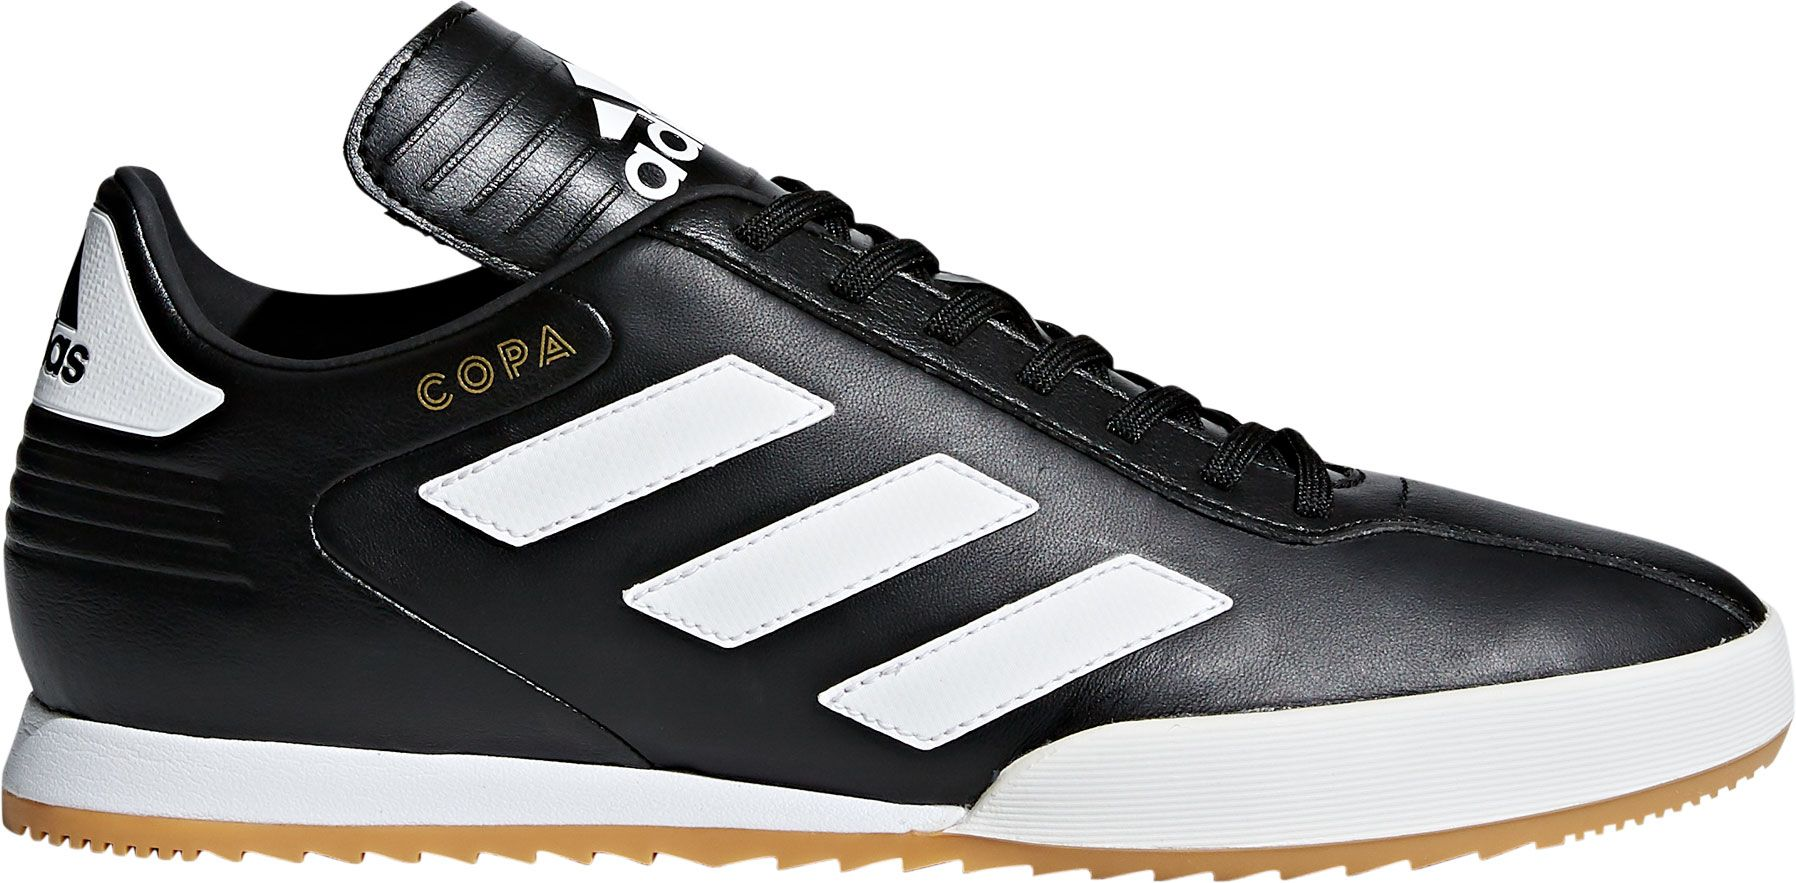 Adidas - Lower Court LO - Color: Negro - Size: 41.3 vFA5iO2